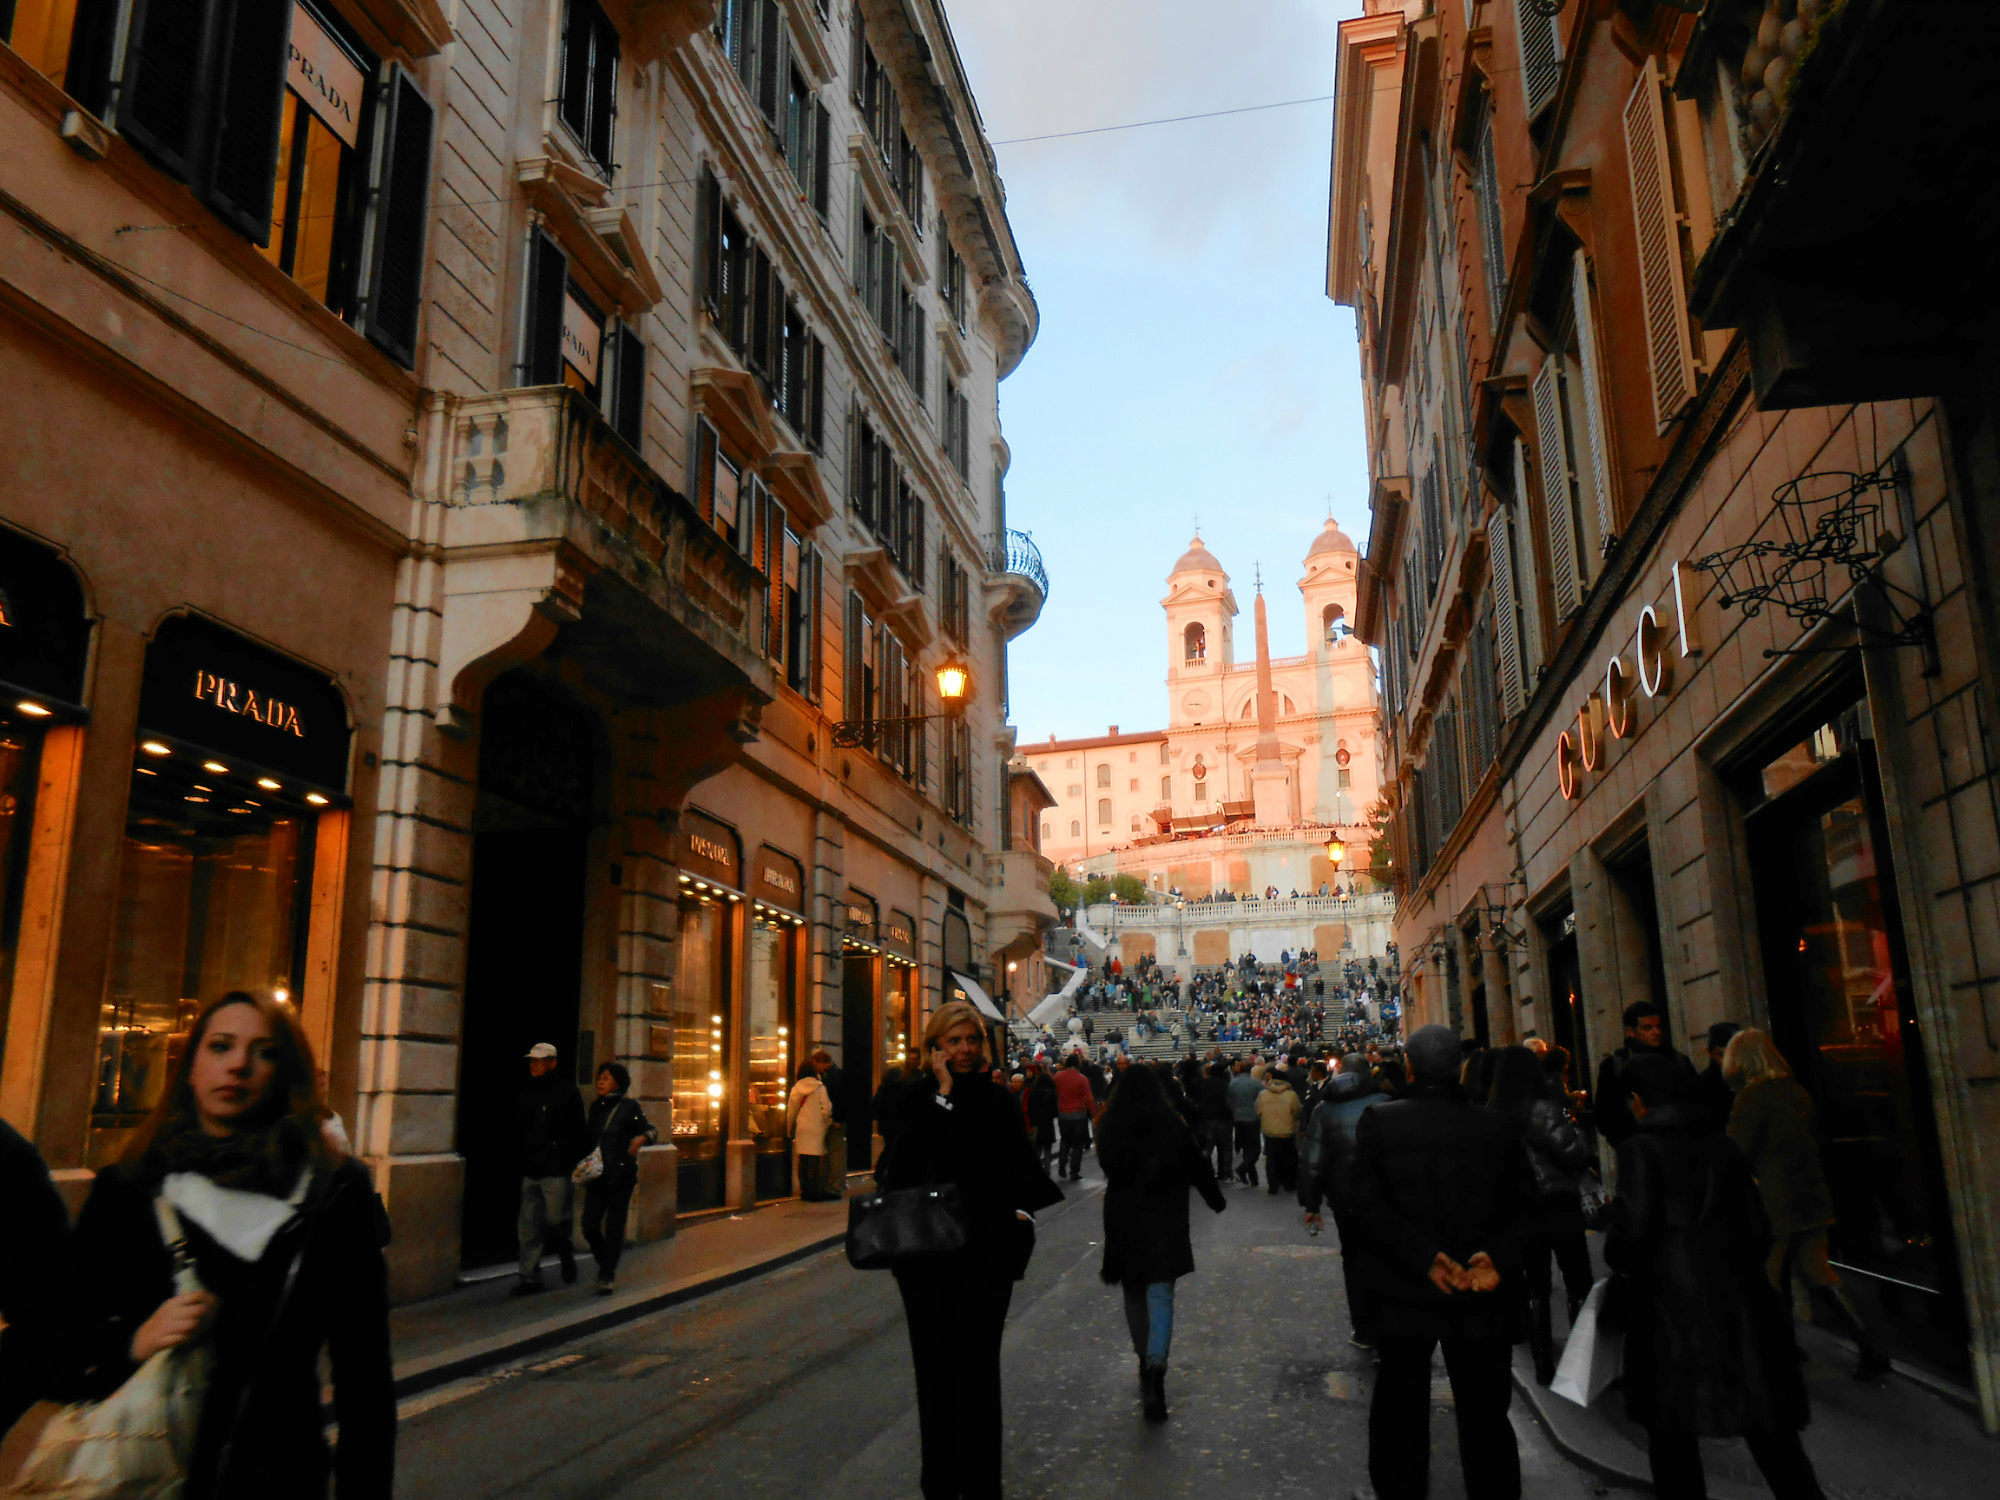 Designer shops now line the streets leading up to the iconic Spanish Steps.